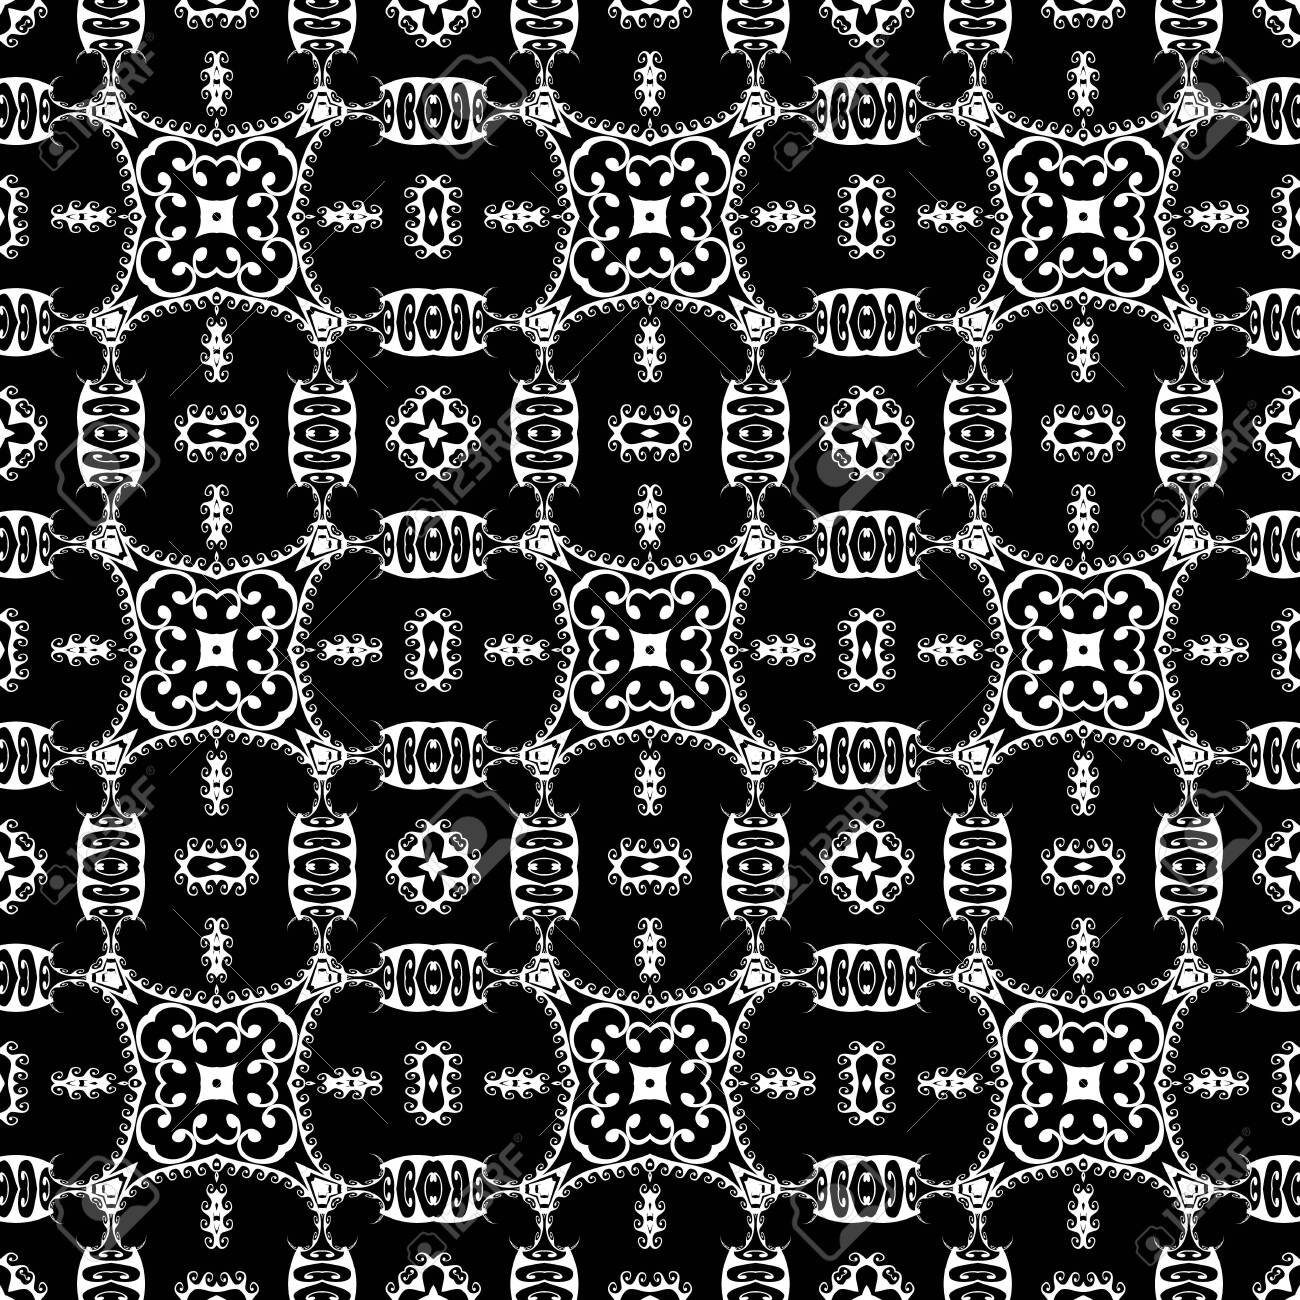 Greek tribal black and white vector seamless pattern. Floral ethnic style background. Repeat decorative monochrome backdrop. Abstract flowers, leaves, shapes, wave lines. Greek key meanders ornament. - 133141475